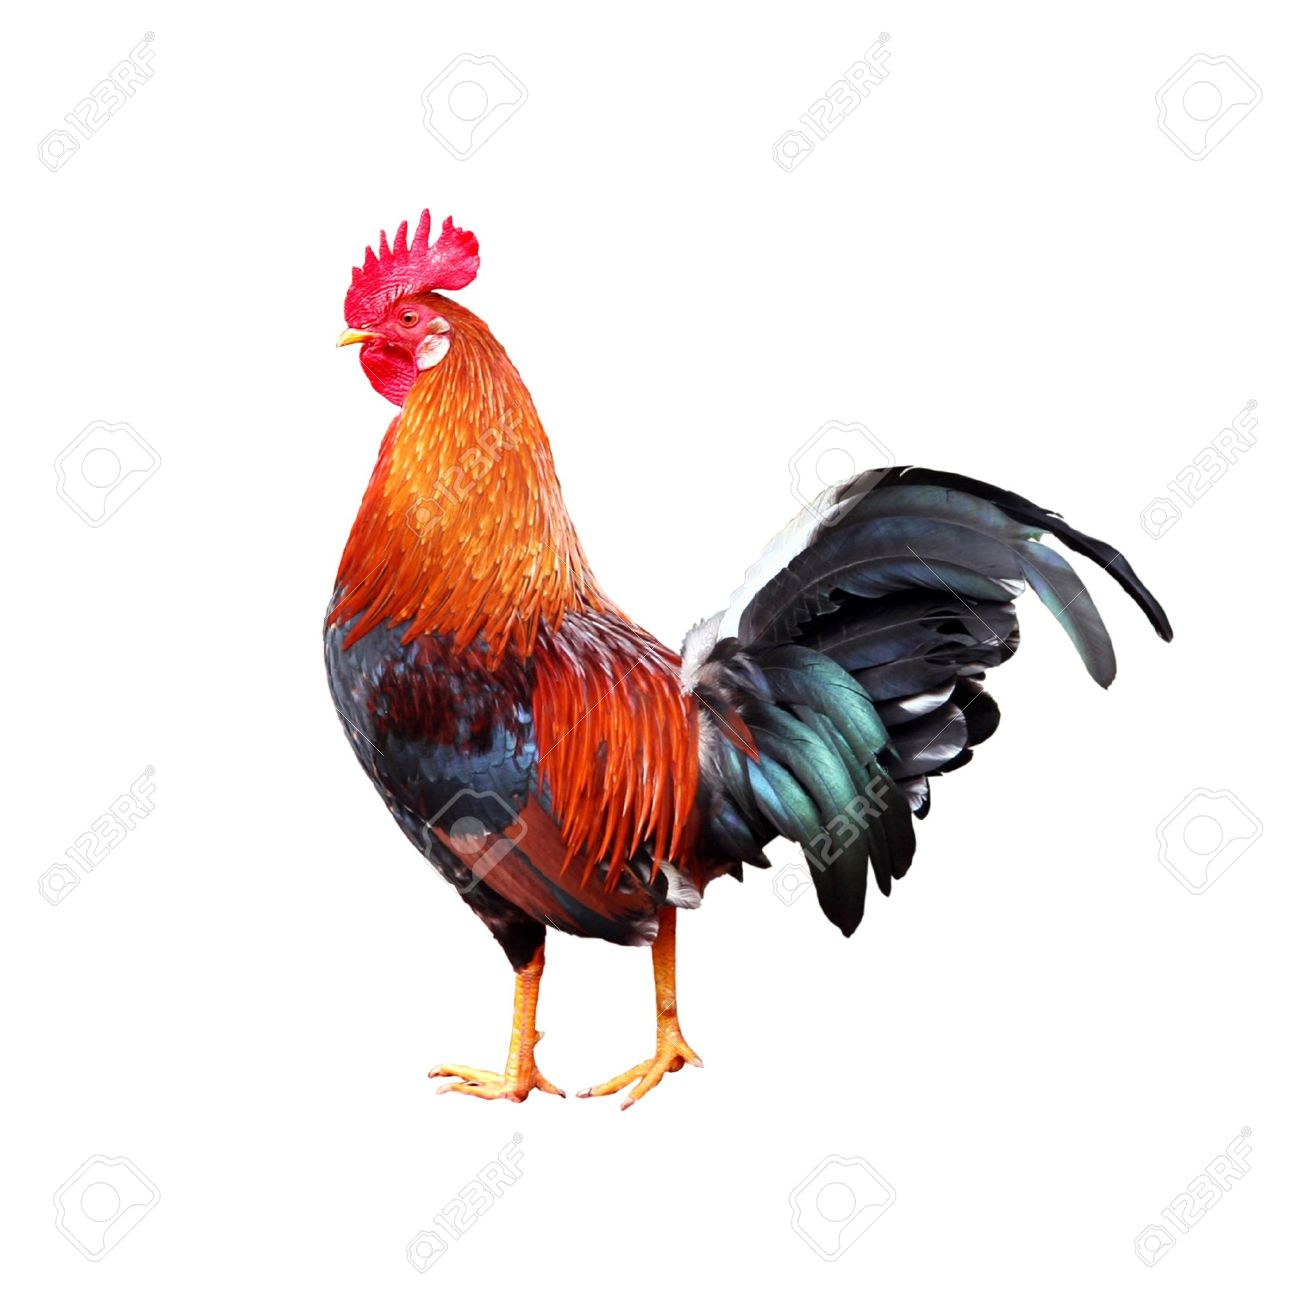 colourful rooster american brown leghorn rooster on white